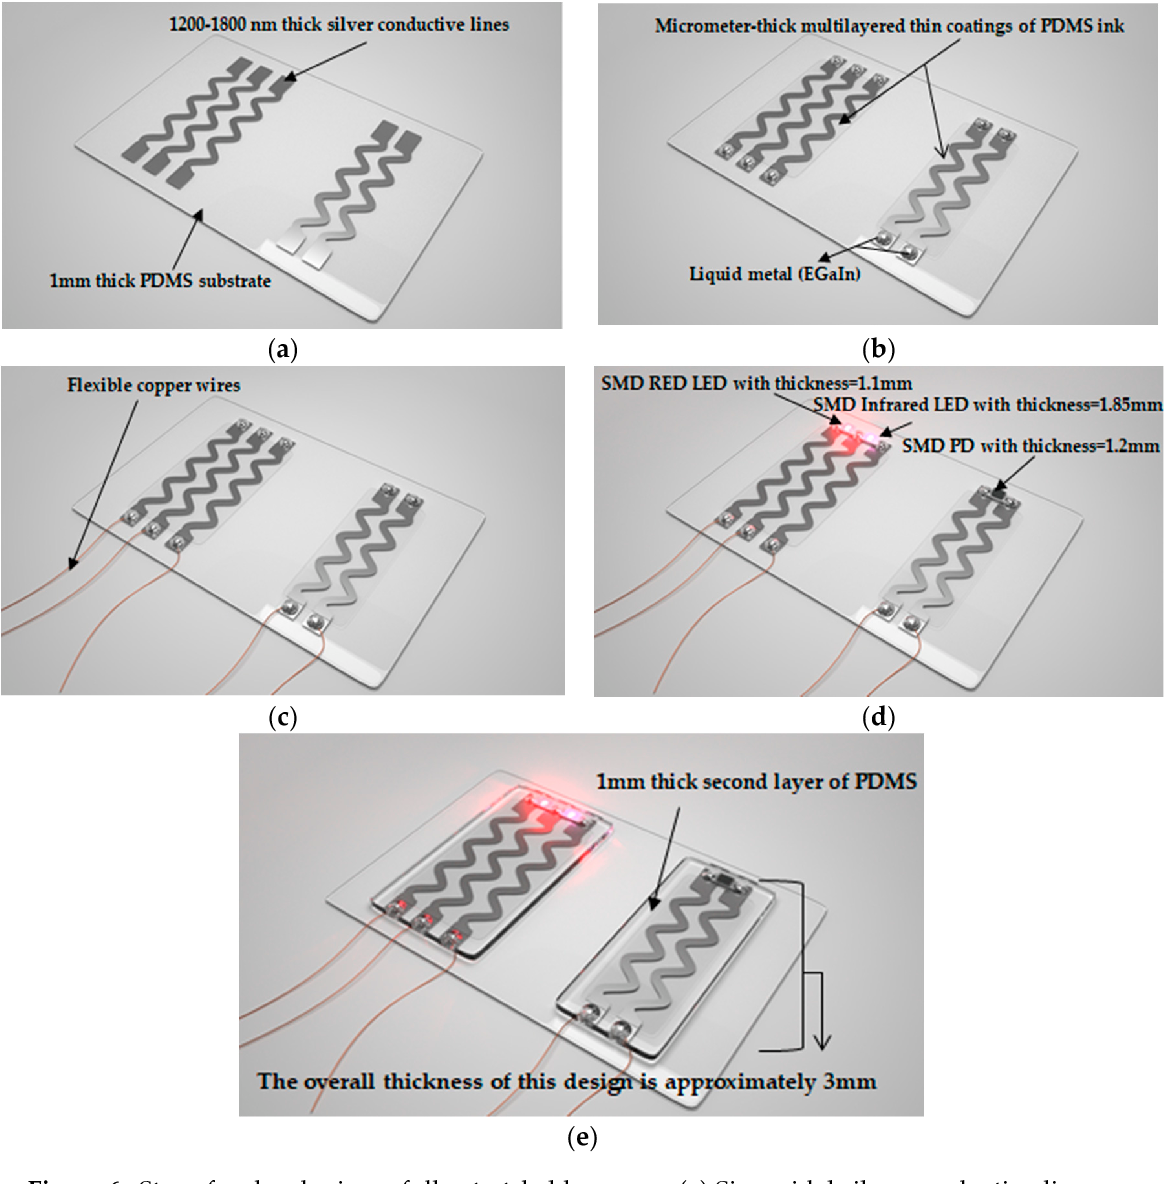 Experimental Characterization Of Inkjet Printed Stretchable Circuits Smd Led Wiring Diagram For Wearable Sensor Applications Semantic Scholar